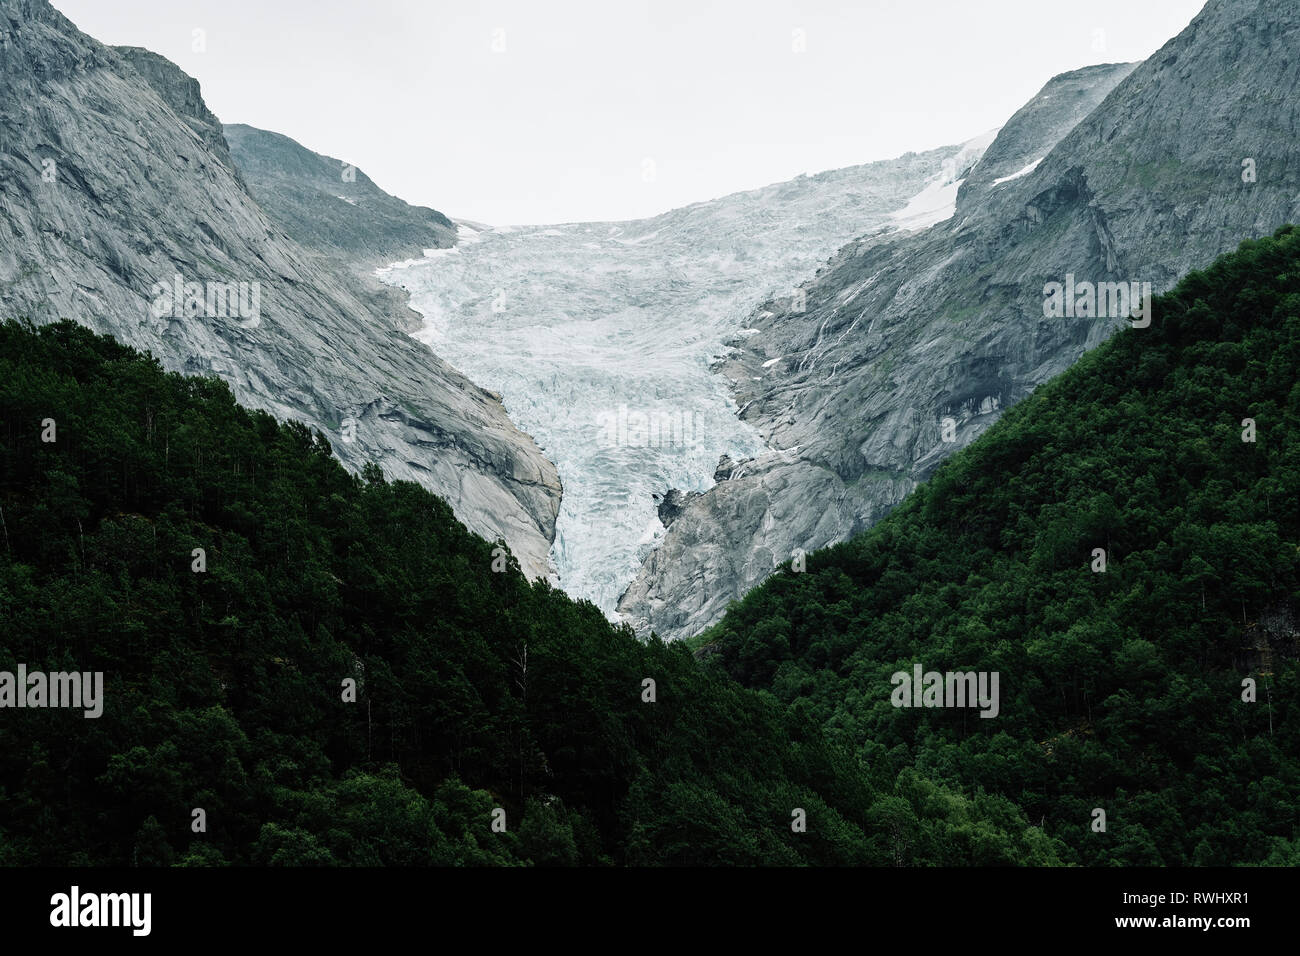 Glacier Retreat - The retreating Briksdal Glacier / Briksdalsbreen an arm of the larger Jostedalsbreen glacier in Stryn Norway. - Stock Image